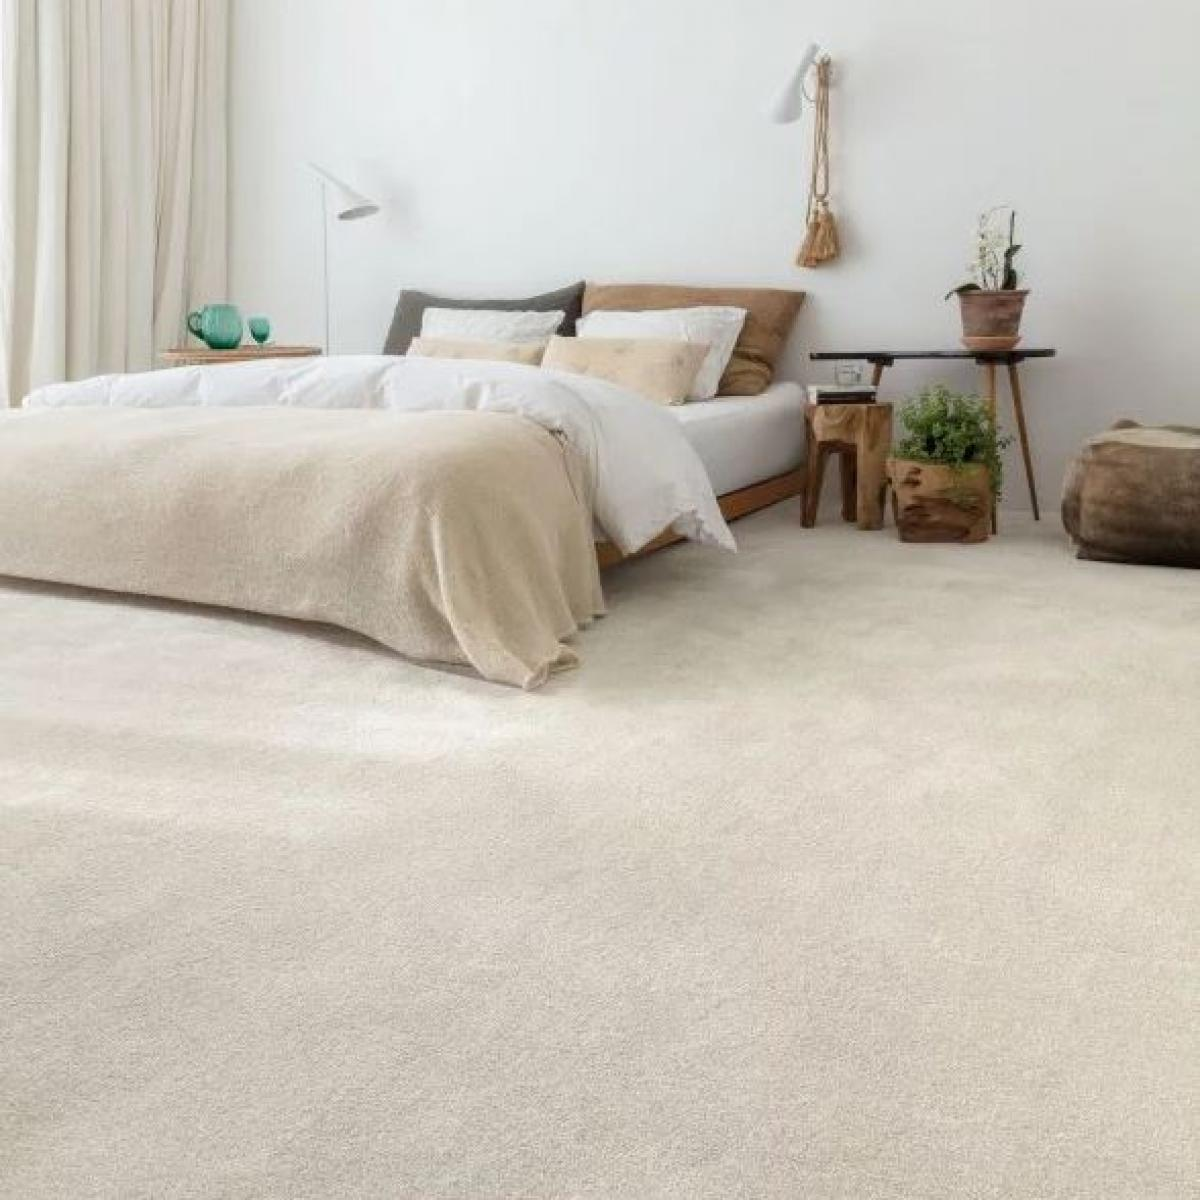 Lifestyle Floors iLove Intrigue Range